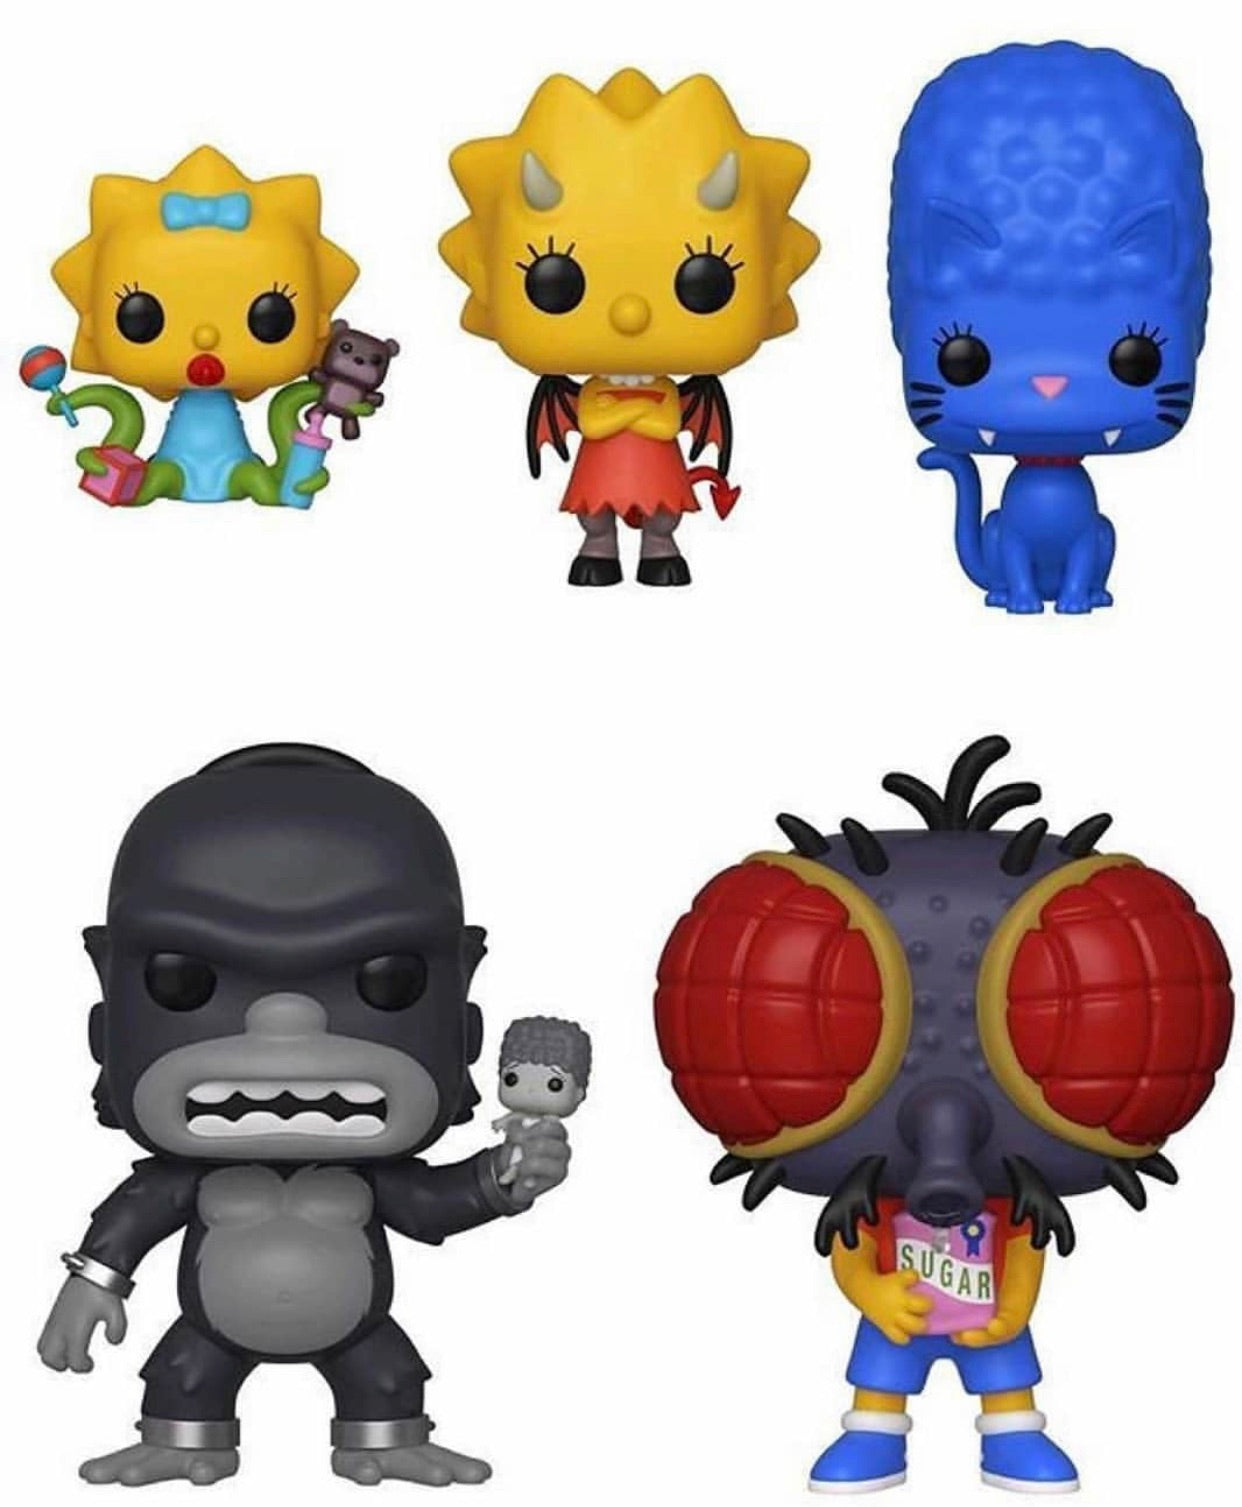 THE SIMPSONS - TREEHOUSE OF HORROR POP! VINYL BUNDLE (SET OF 5)(PREORDER)